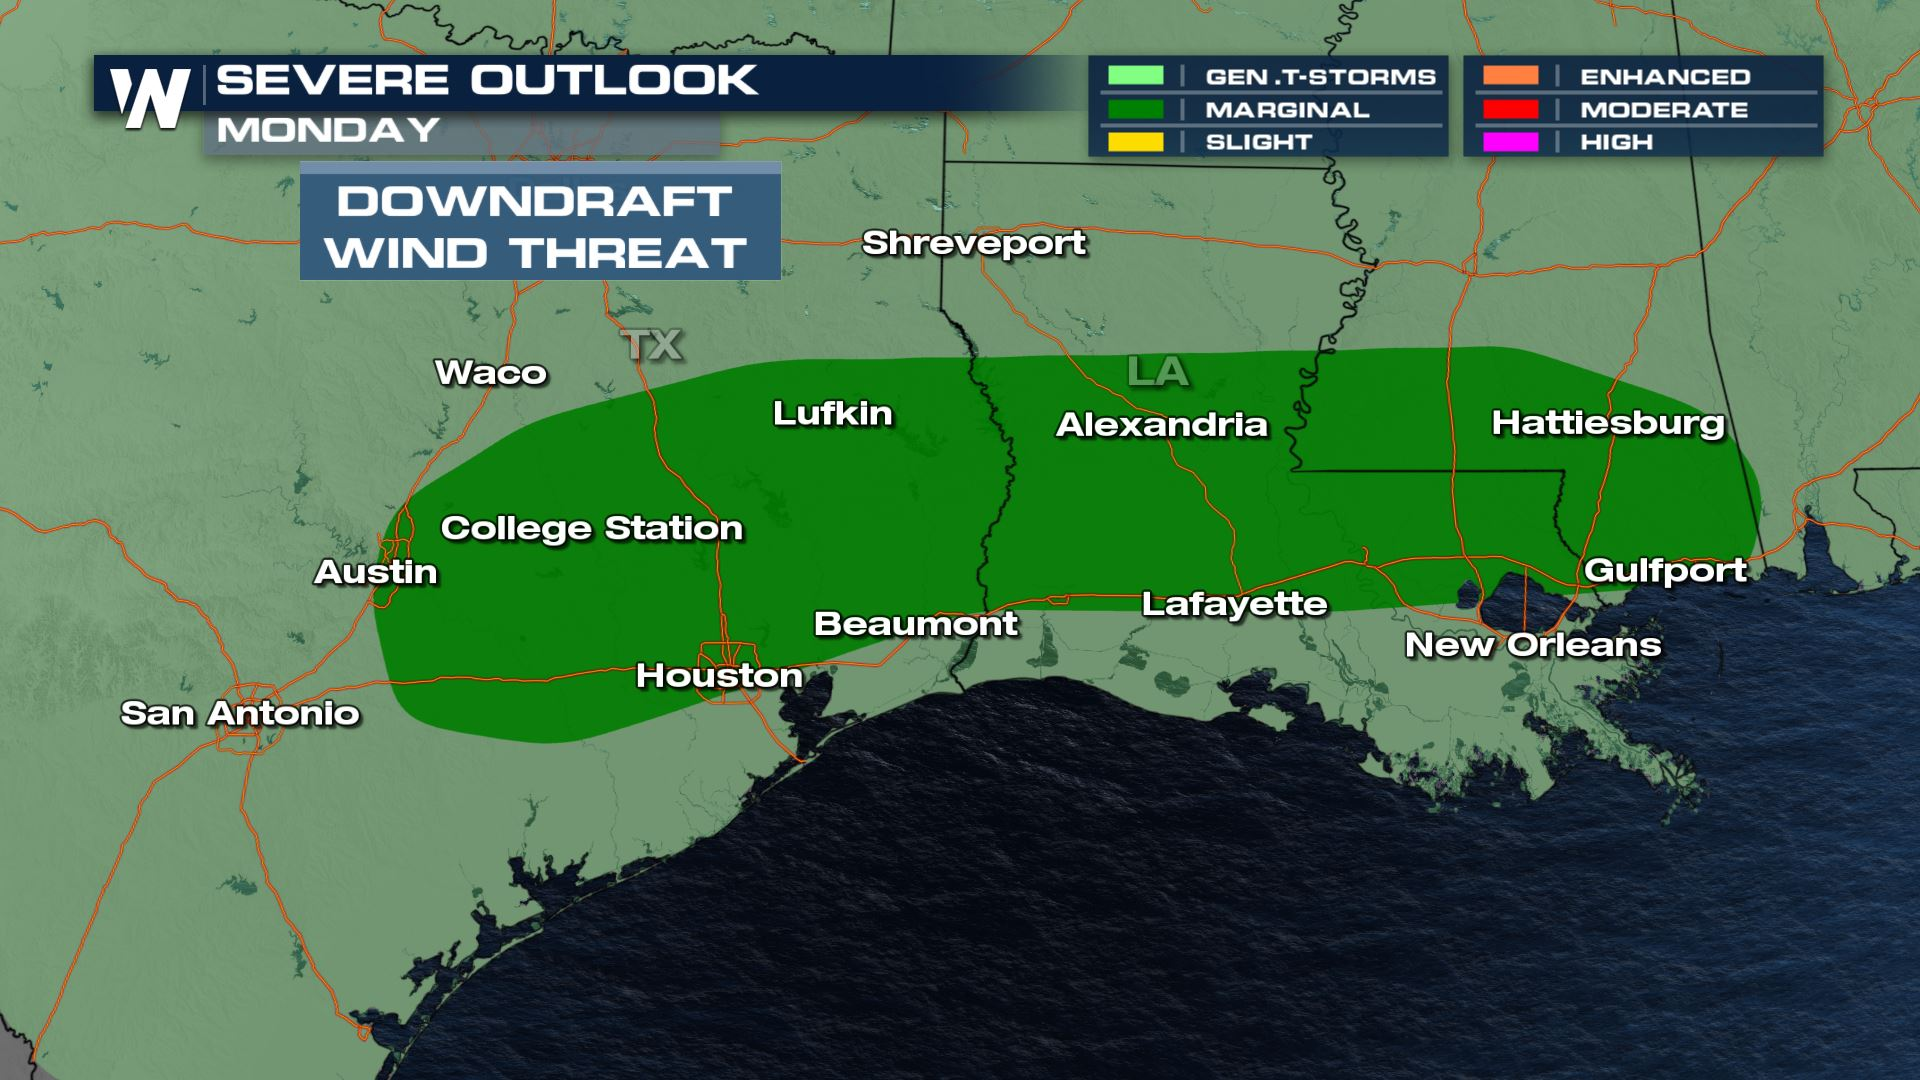 Isolated Severe Storms for the Southern Plains